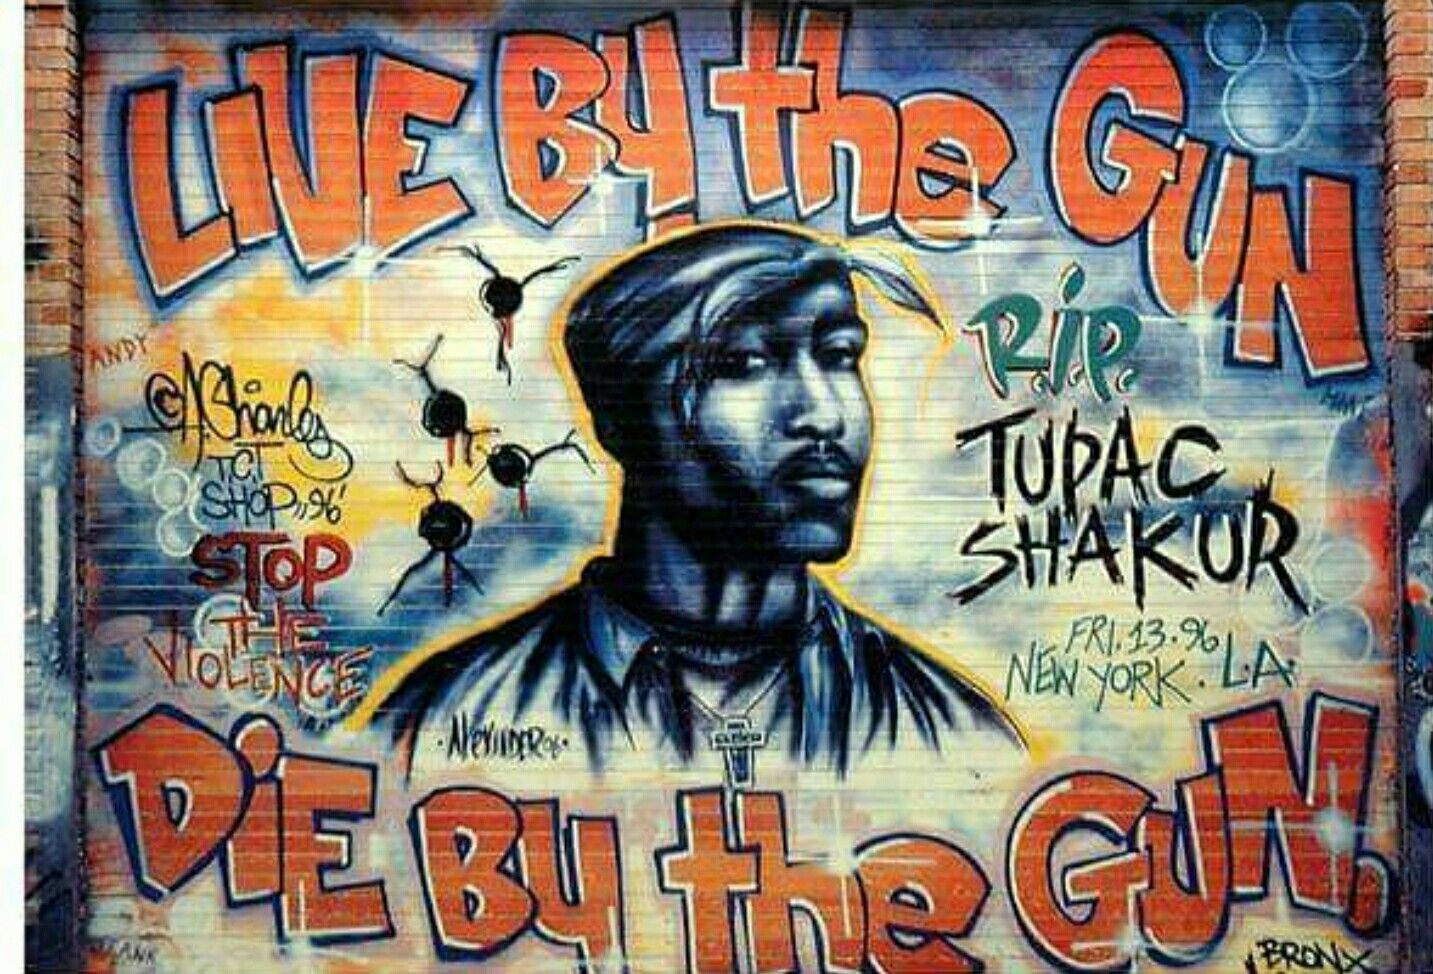 2pac rip graffiti